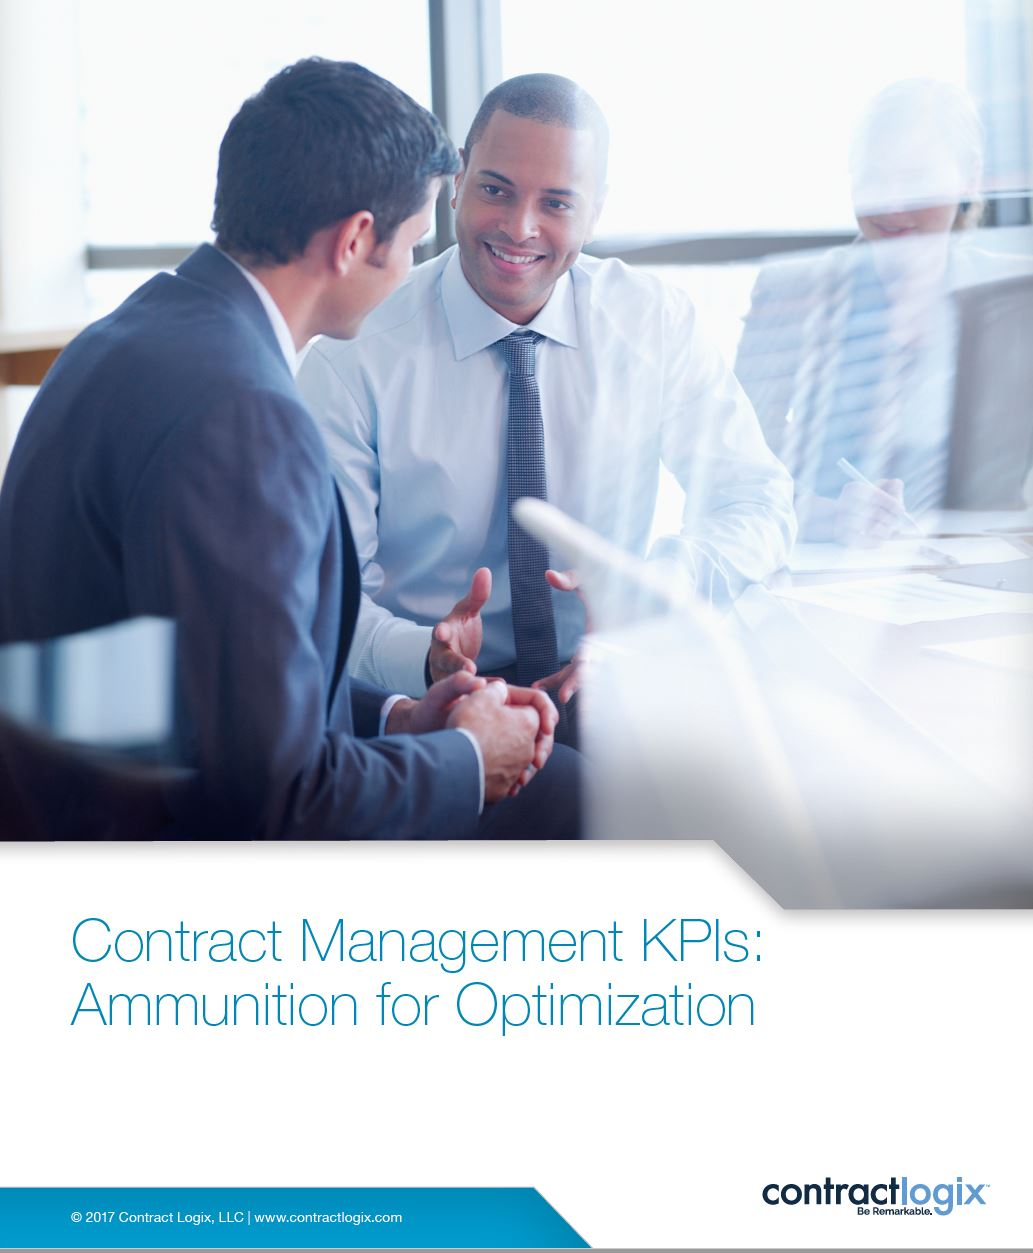 KPIs for Contract Management